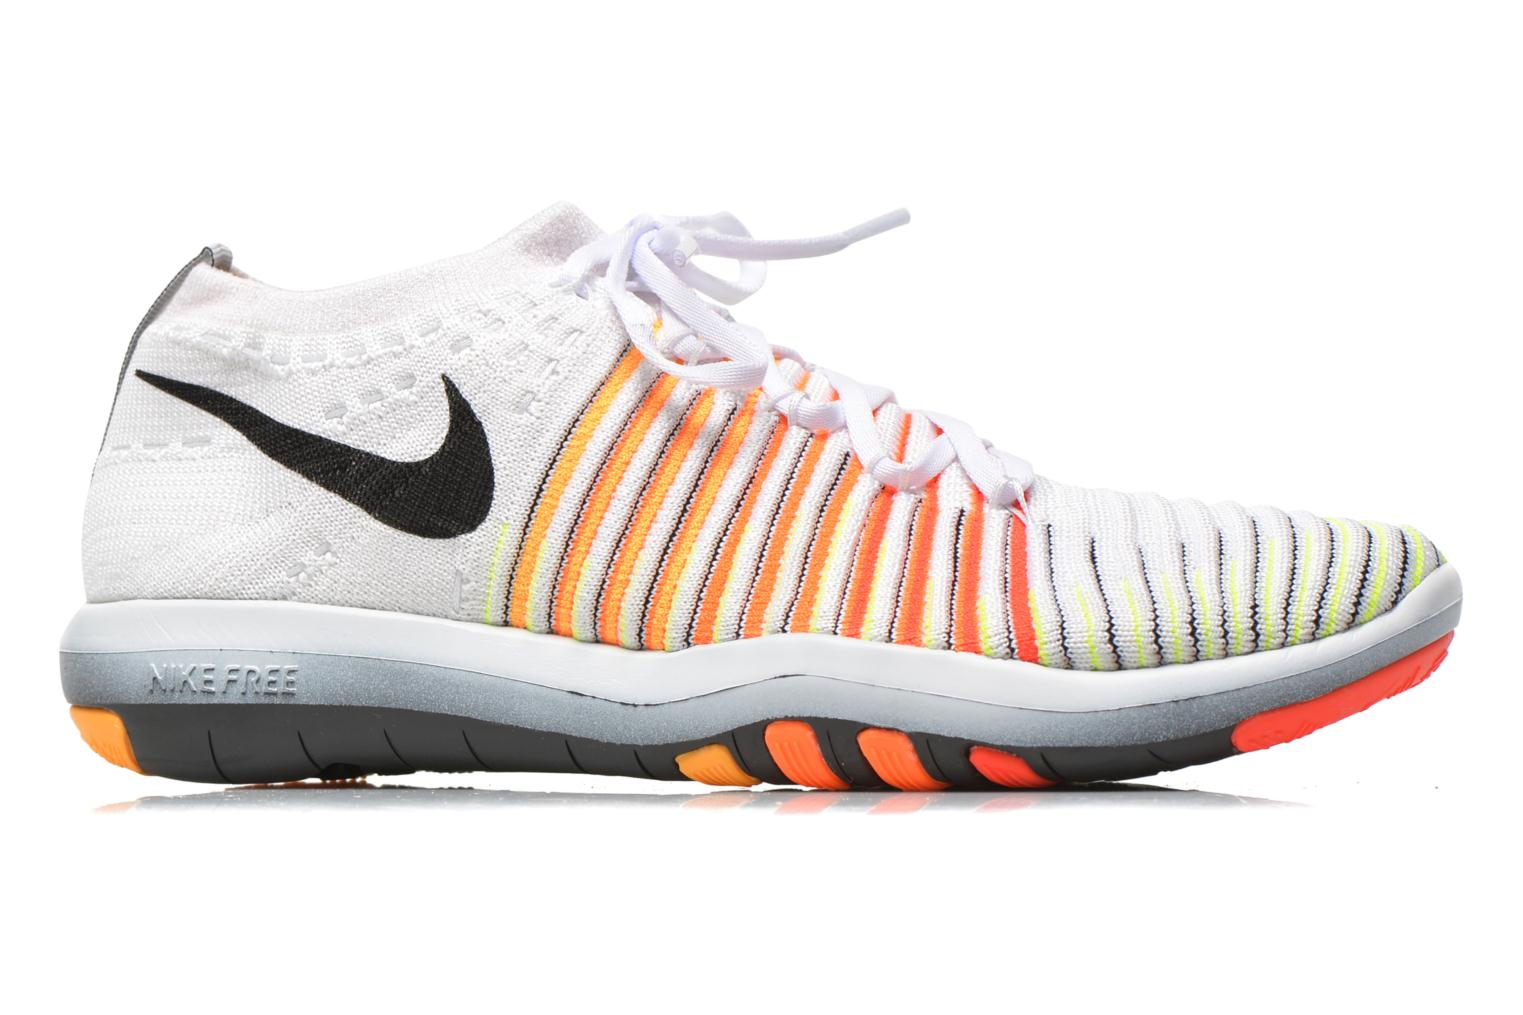 Wm Nike Free Transform Flyknit White/Black-Lsr Orng-Ttl Orng